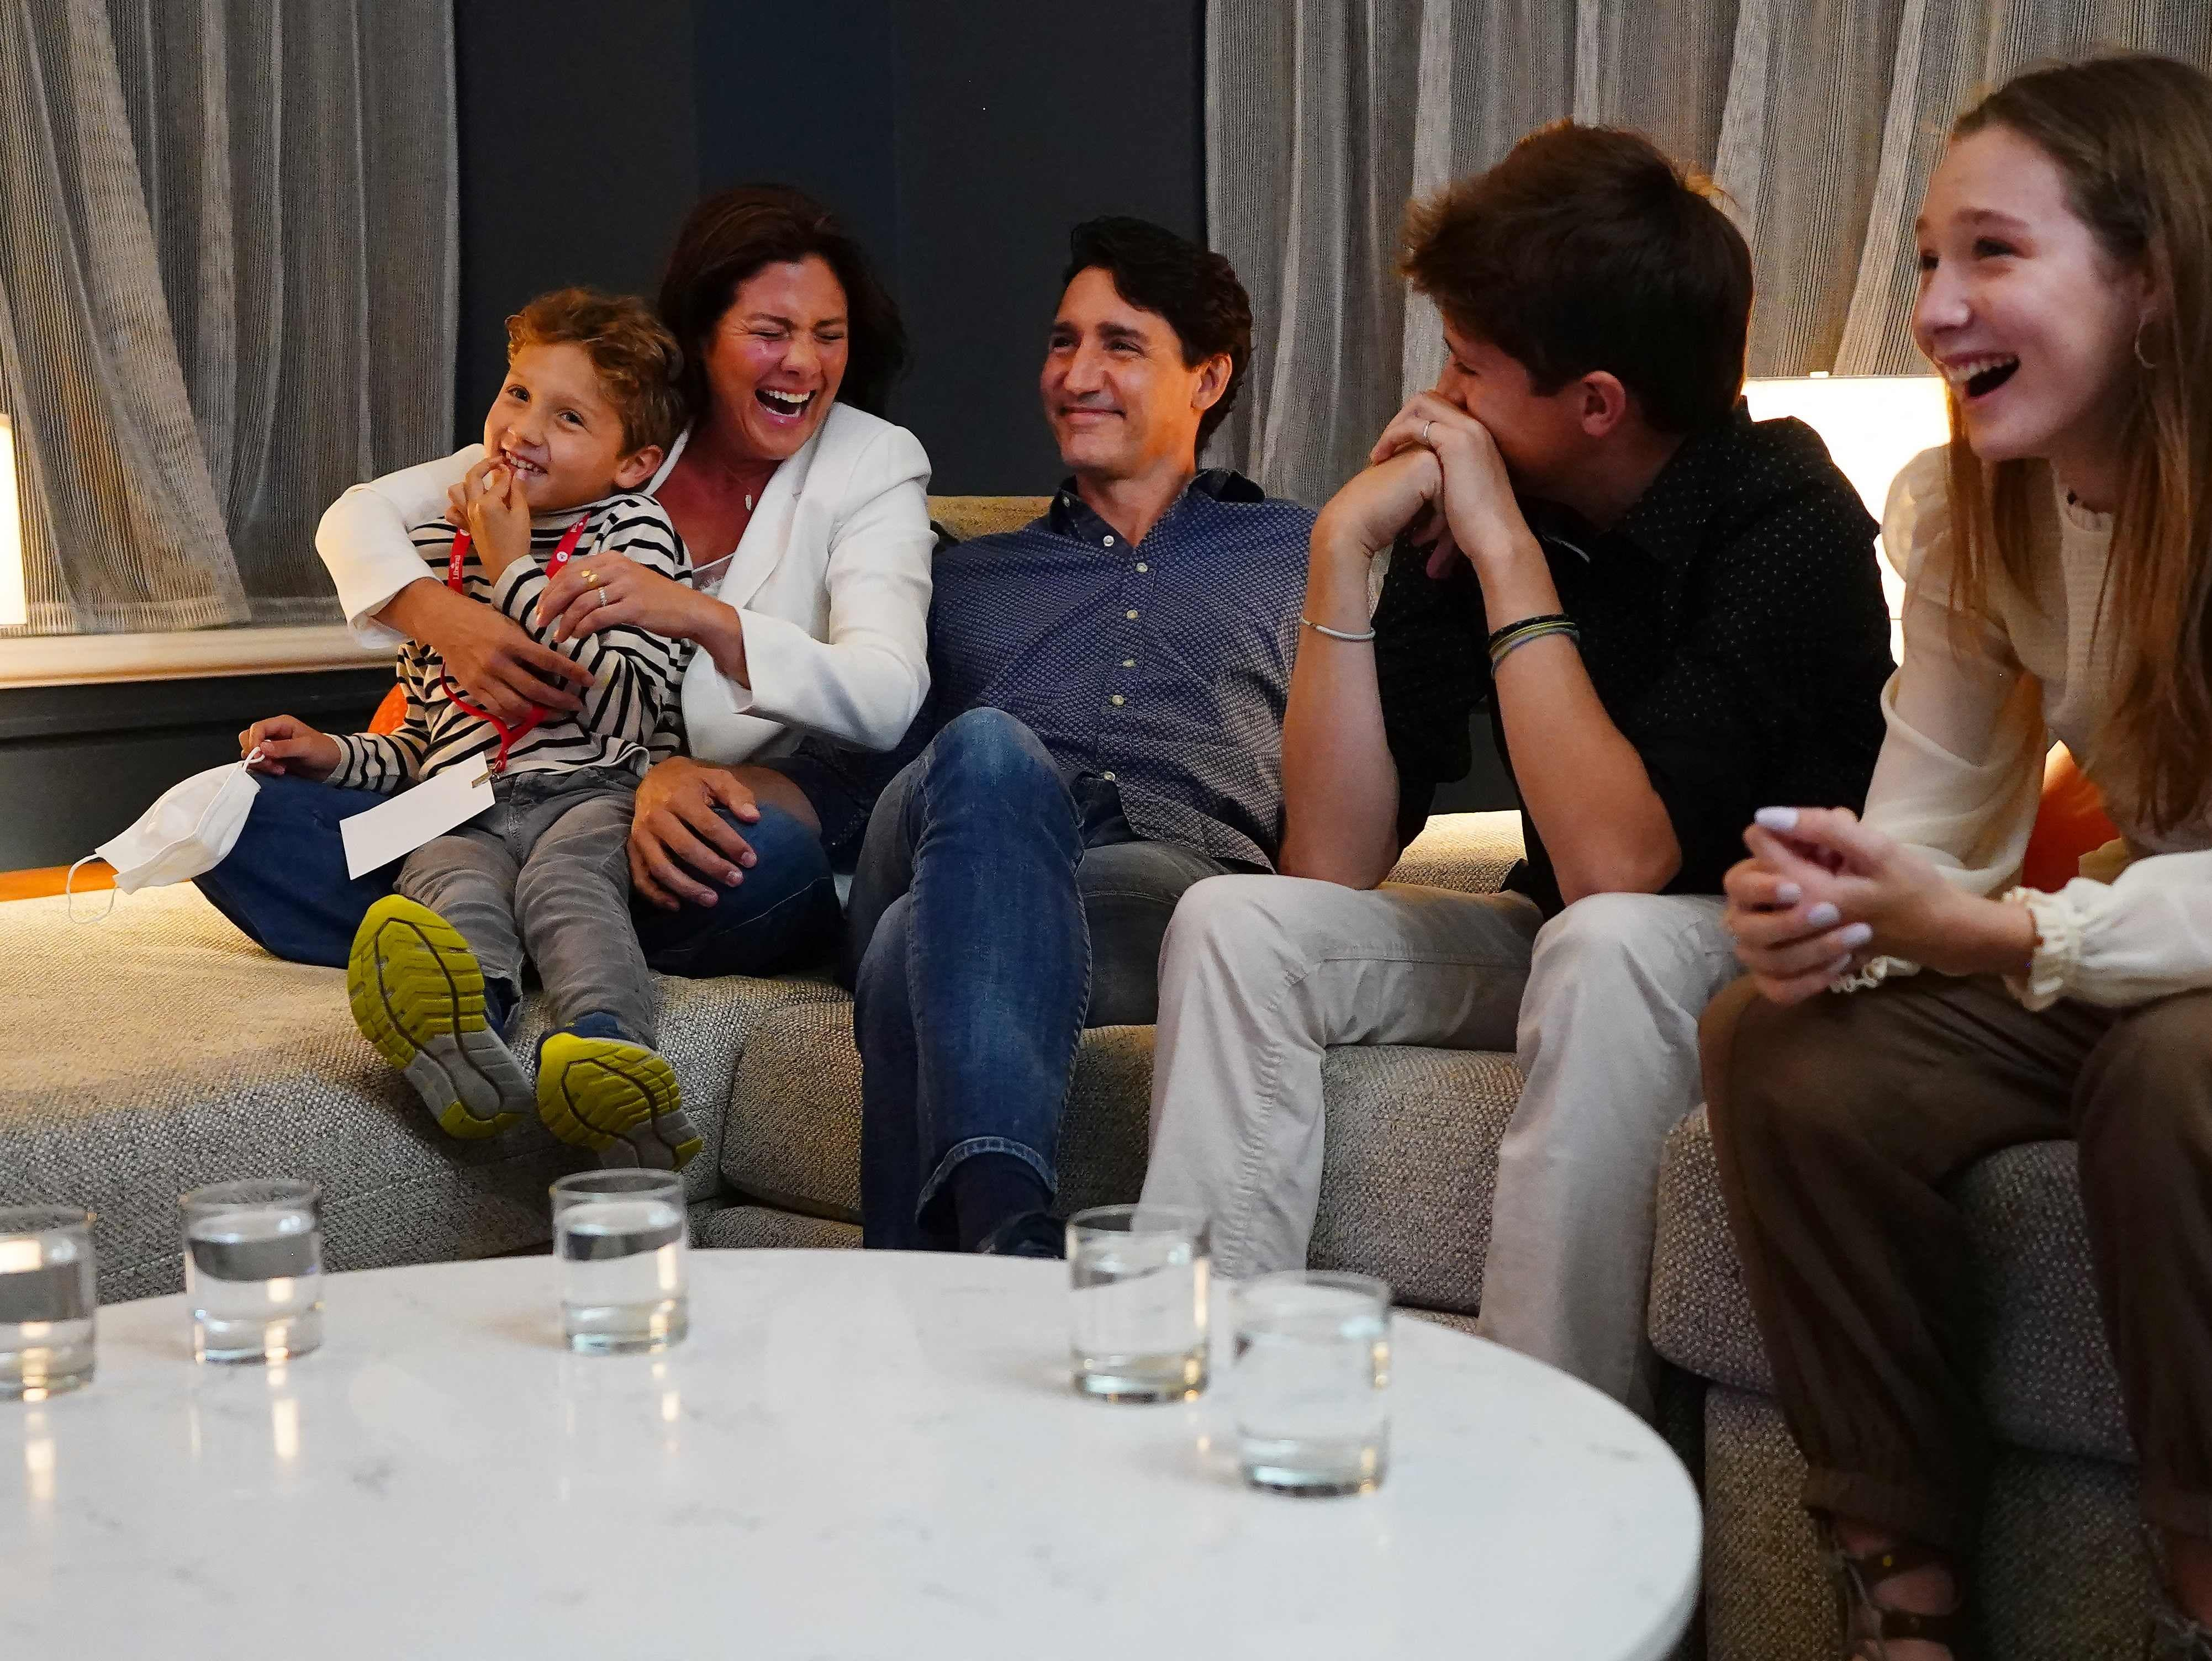 Justin Trudeau wins Canada election but Liberal Party may struggle for outright majority, projections say